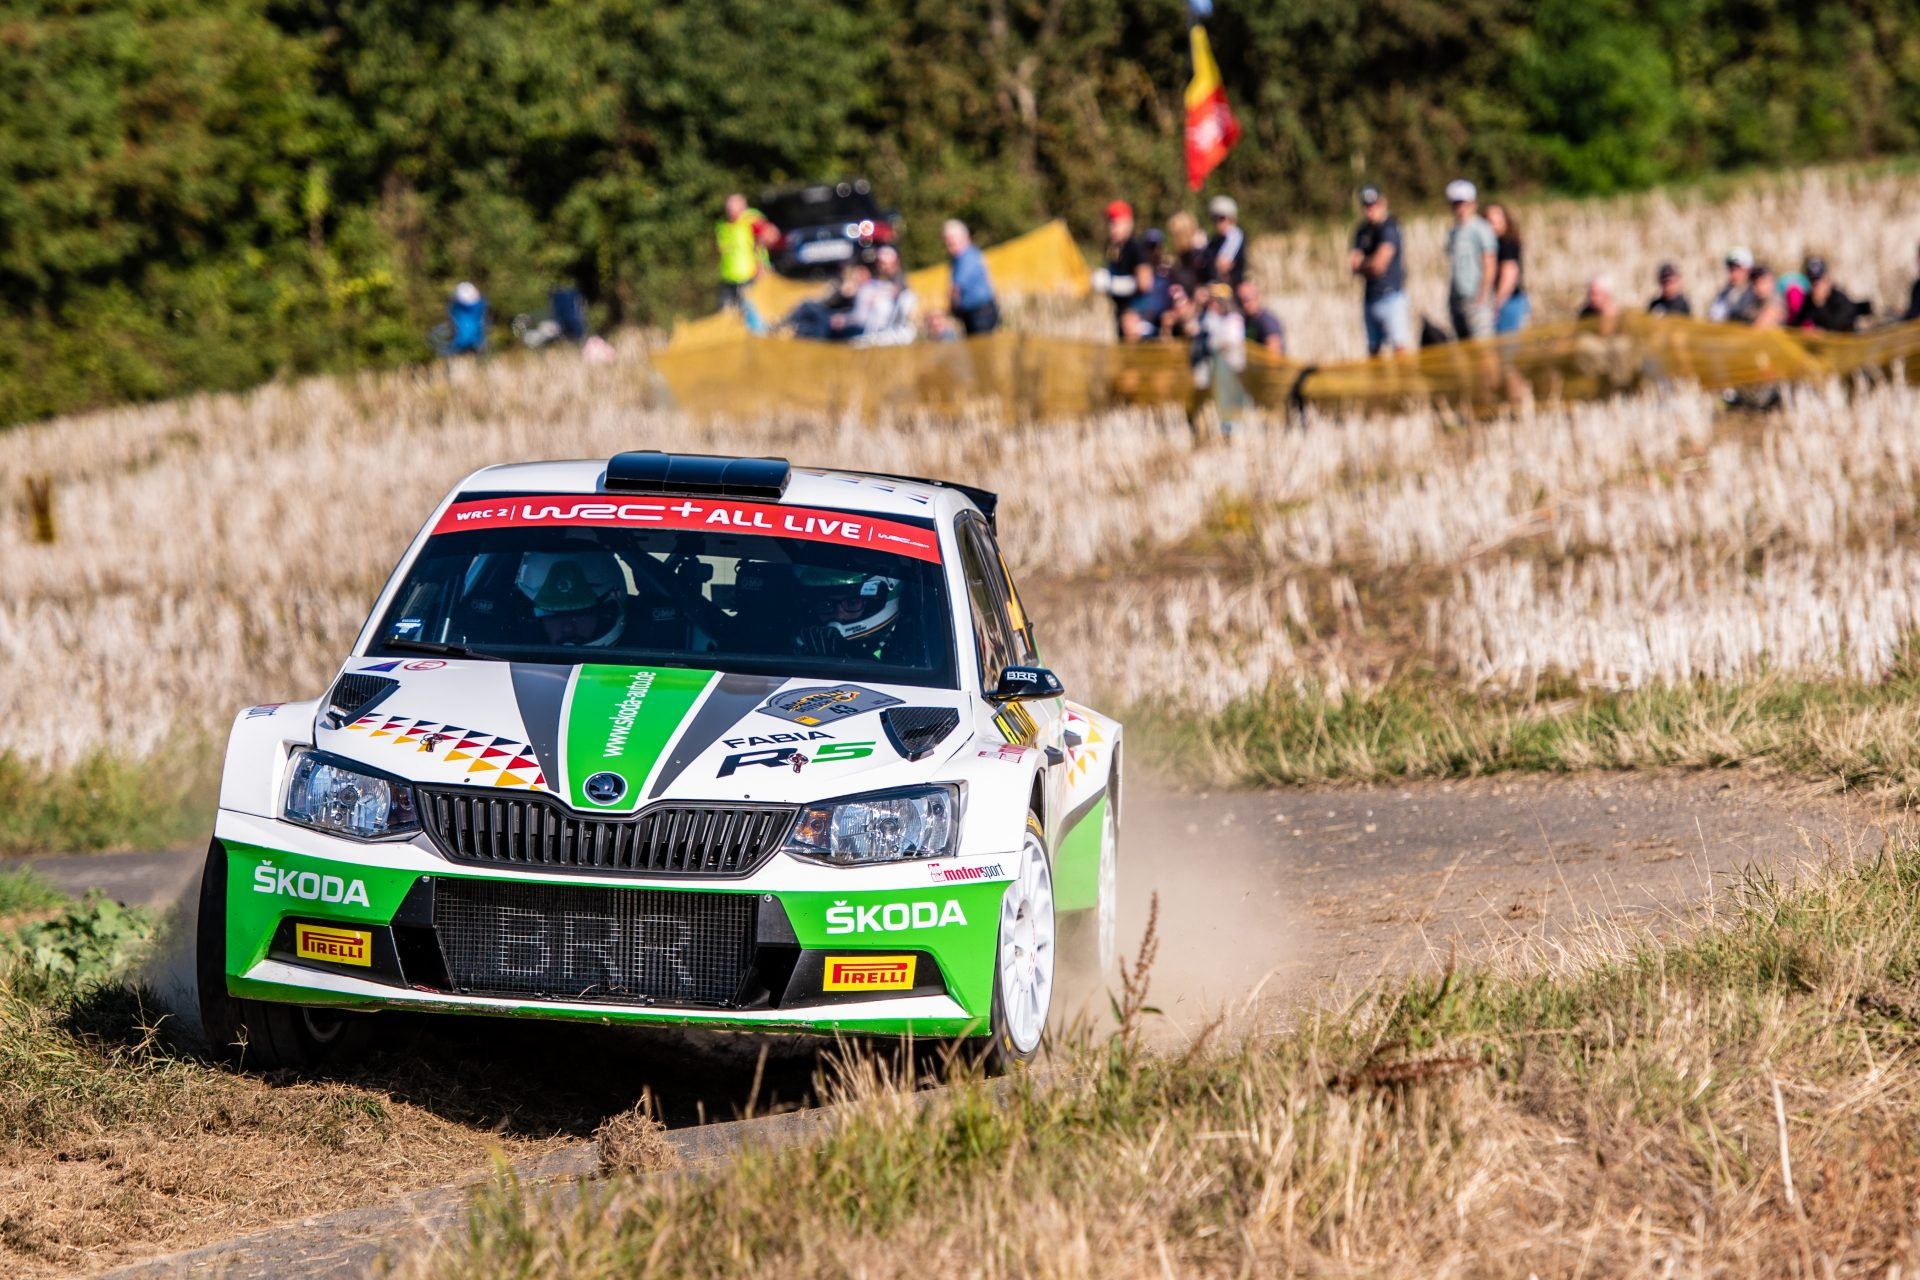 Rallye Deutschland 2018: From Bad Luck Back to the Top | Video